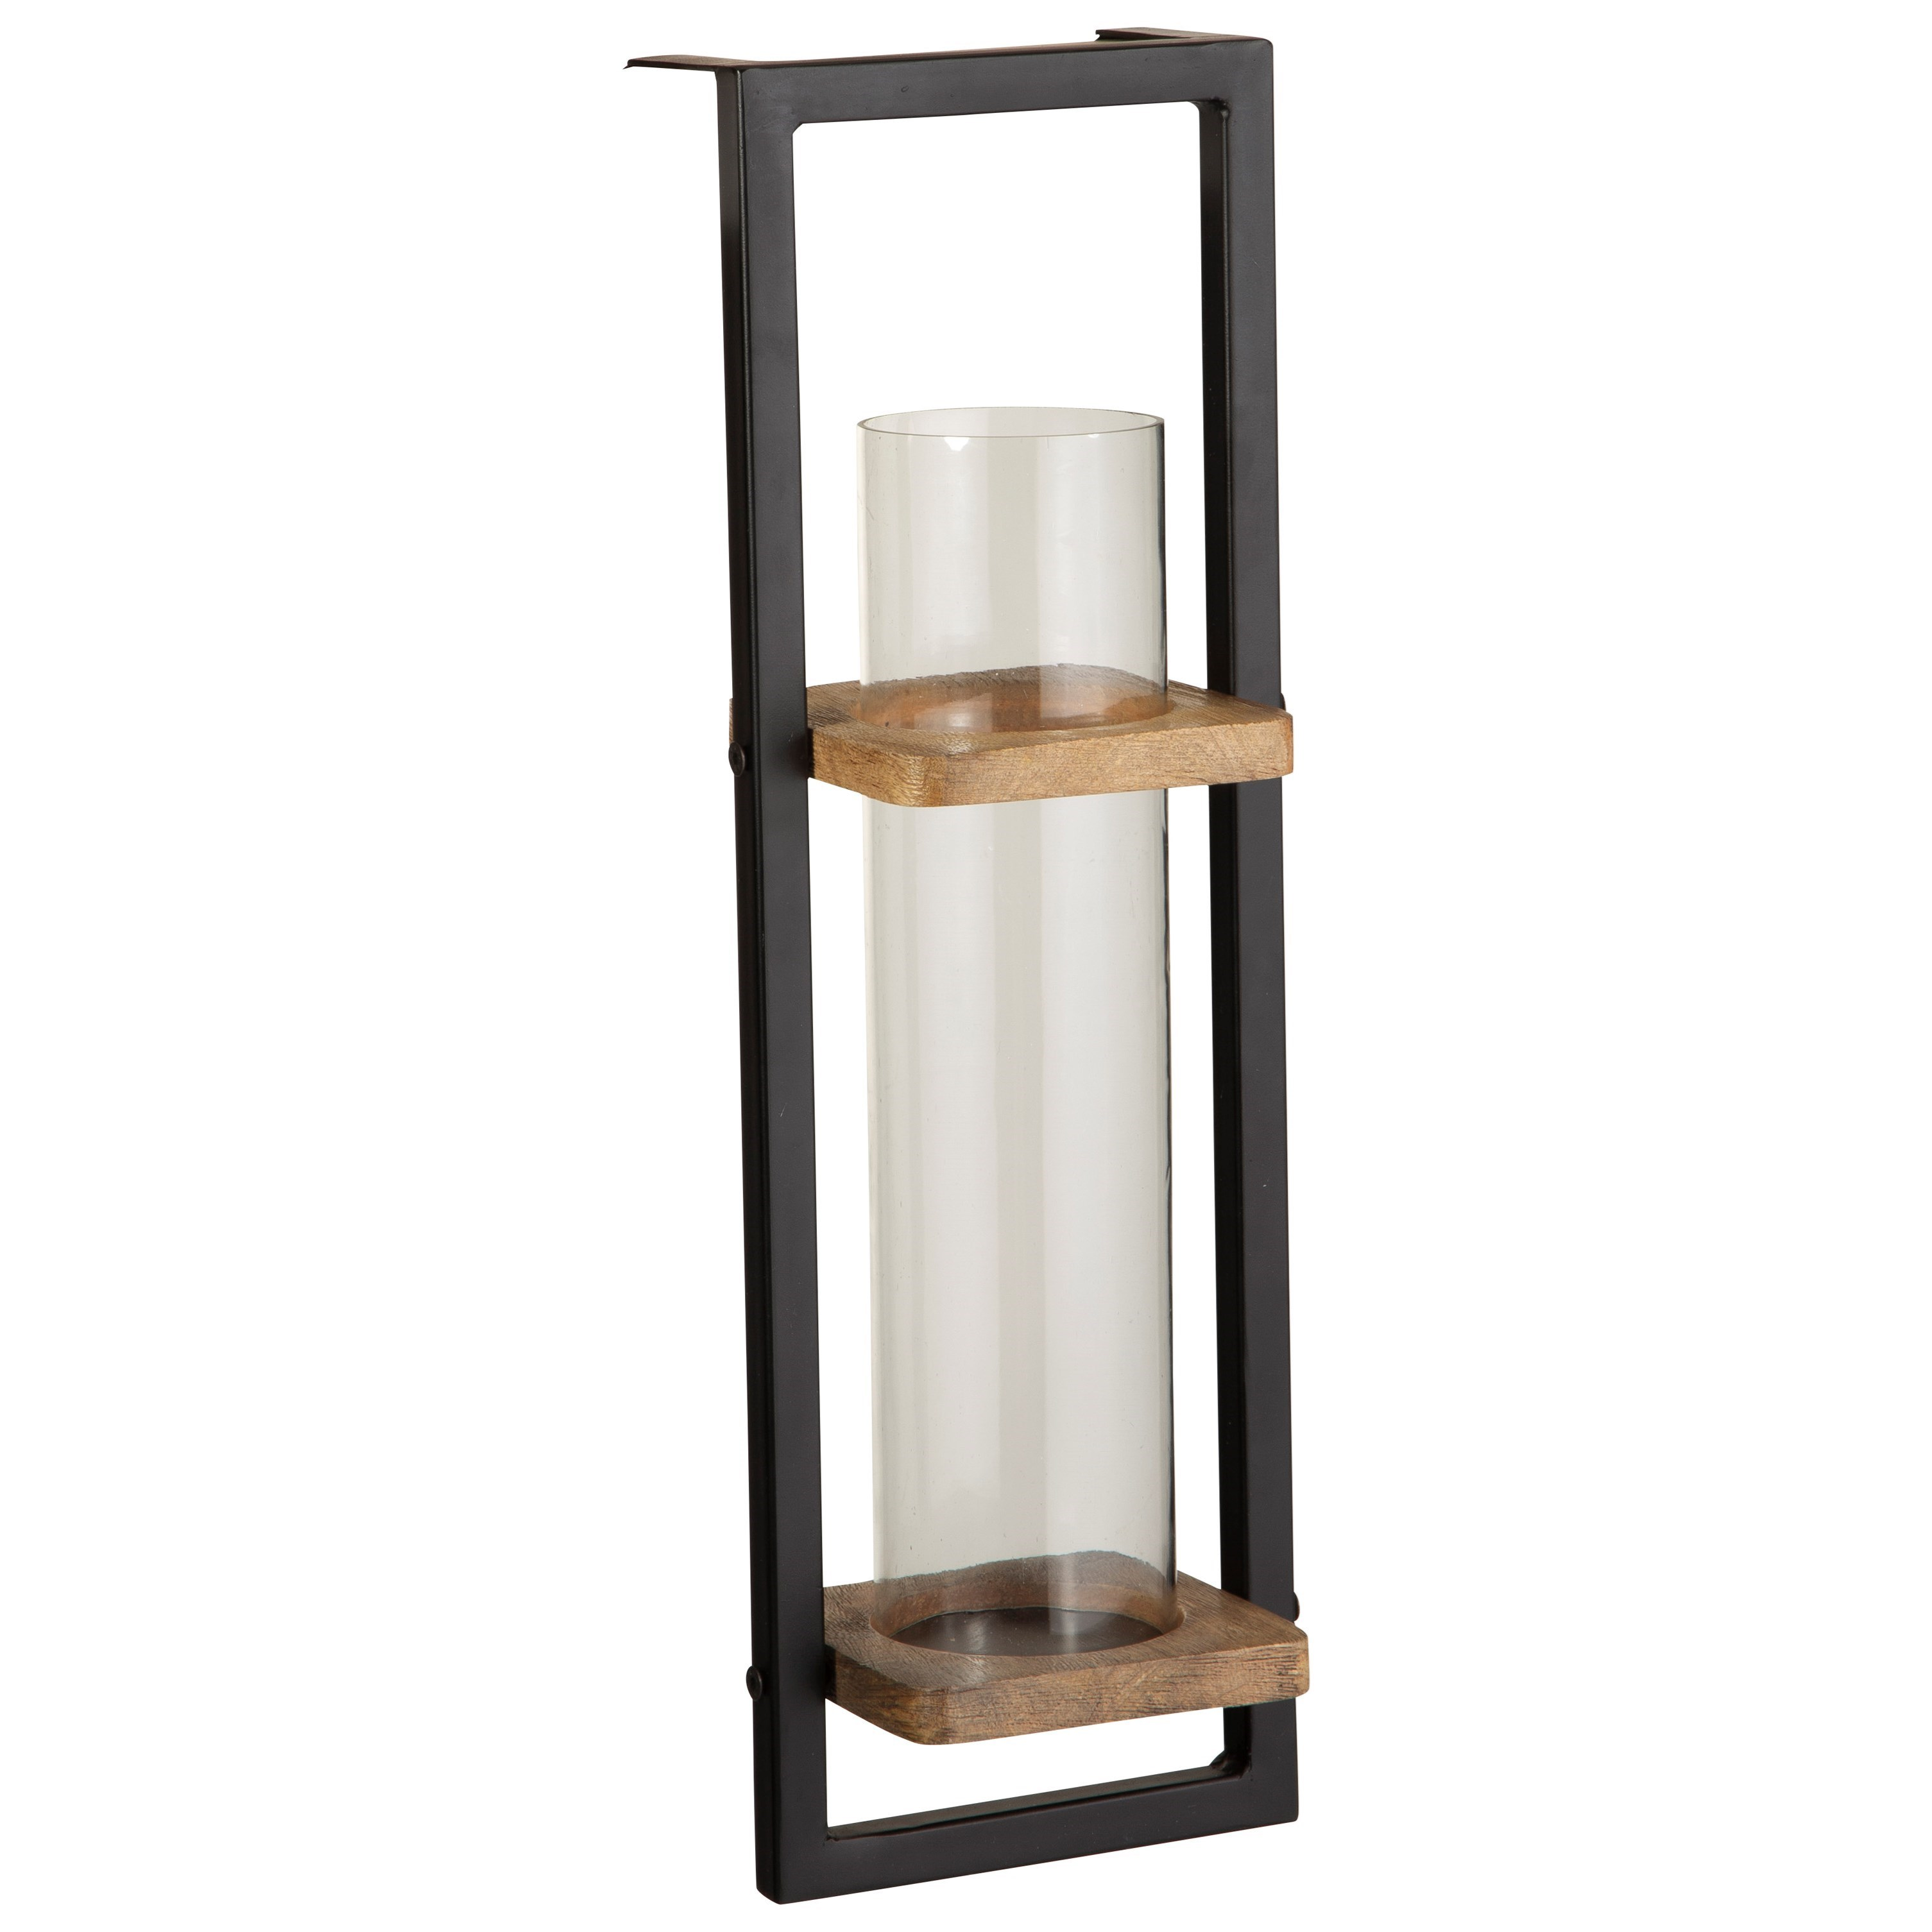 Wall Art Colburn Natural/Black Wall Sconce by Signature Design by Ashley at Northeast Factory Direct